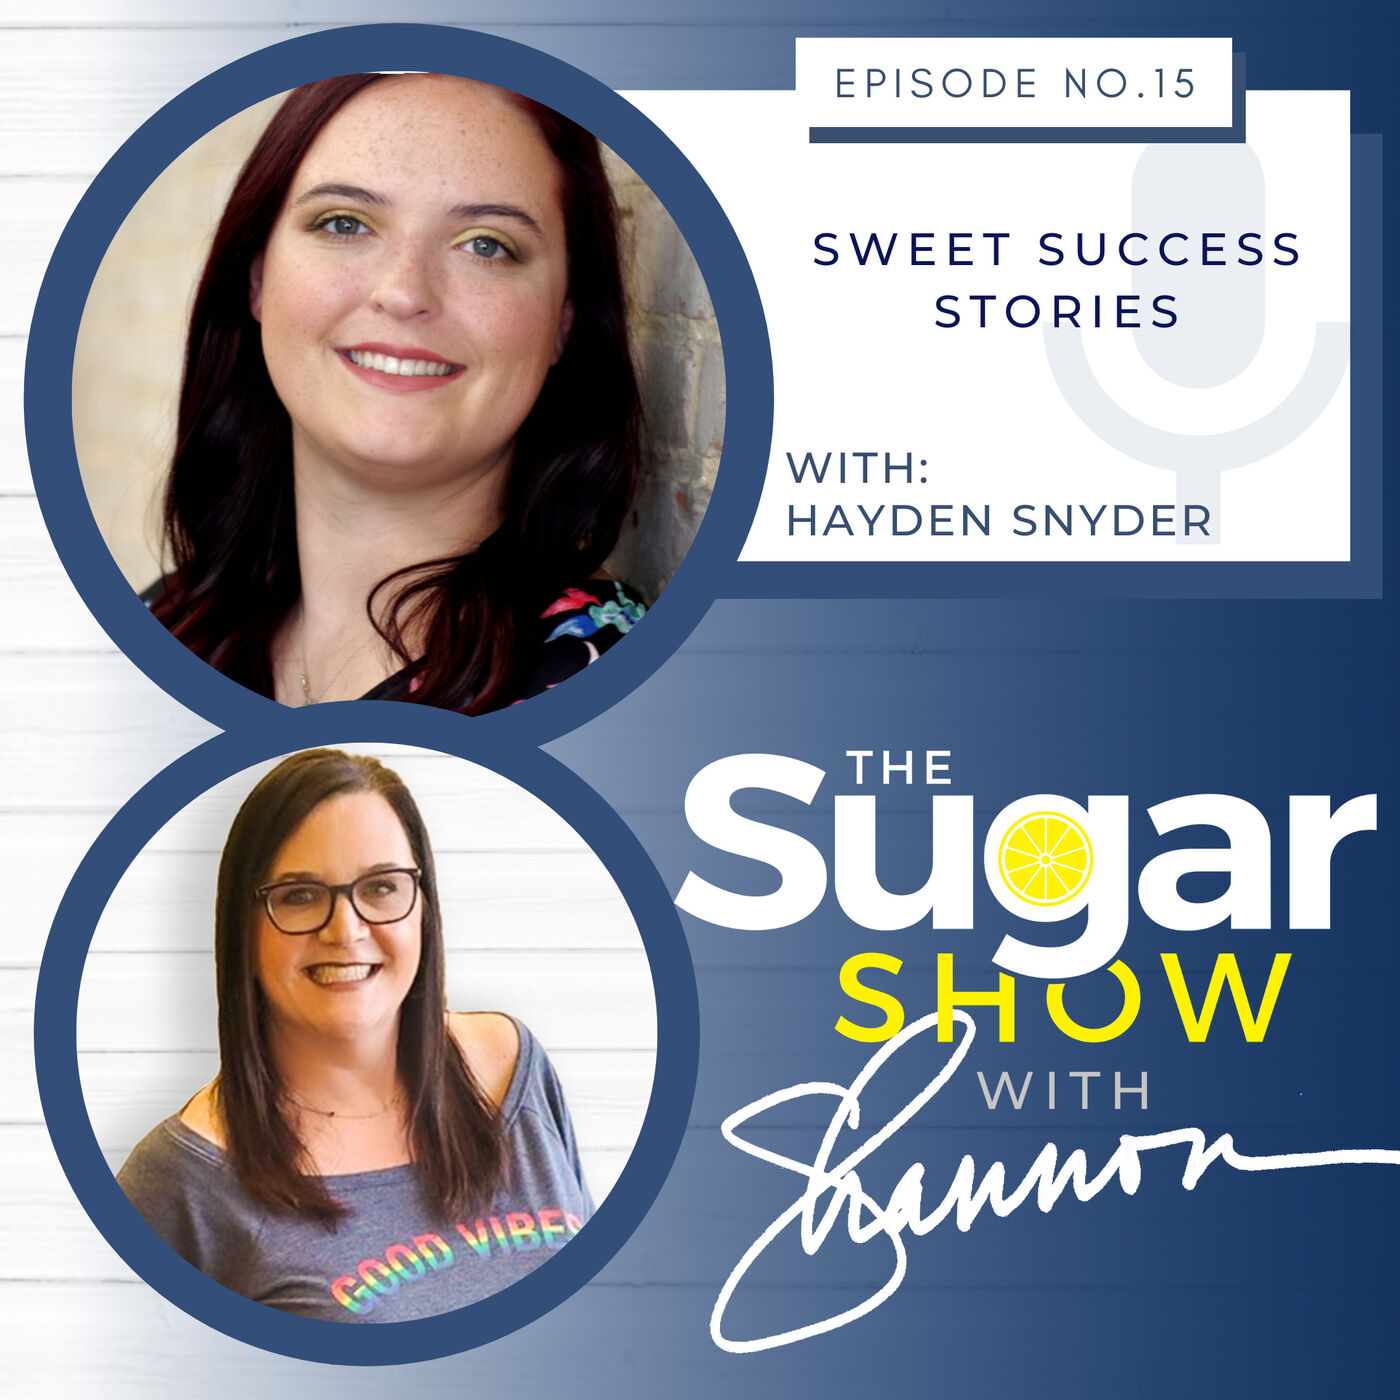 The SugarShow S2E15 Sweet Success Stories: Hayden Snyder